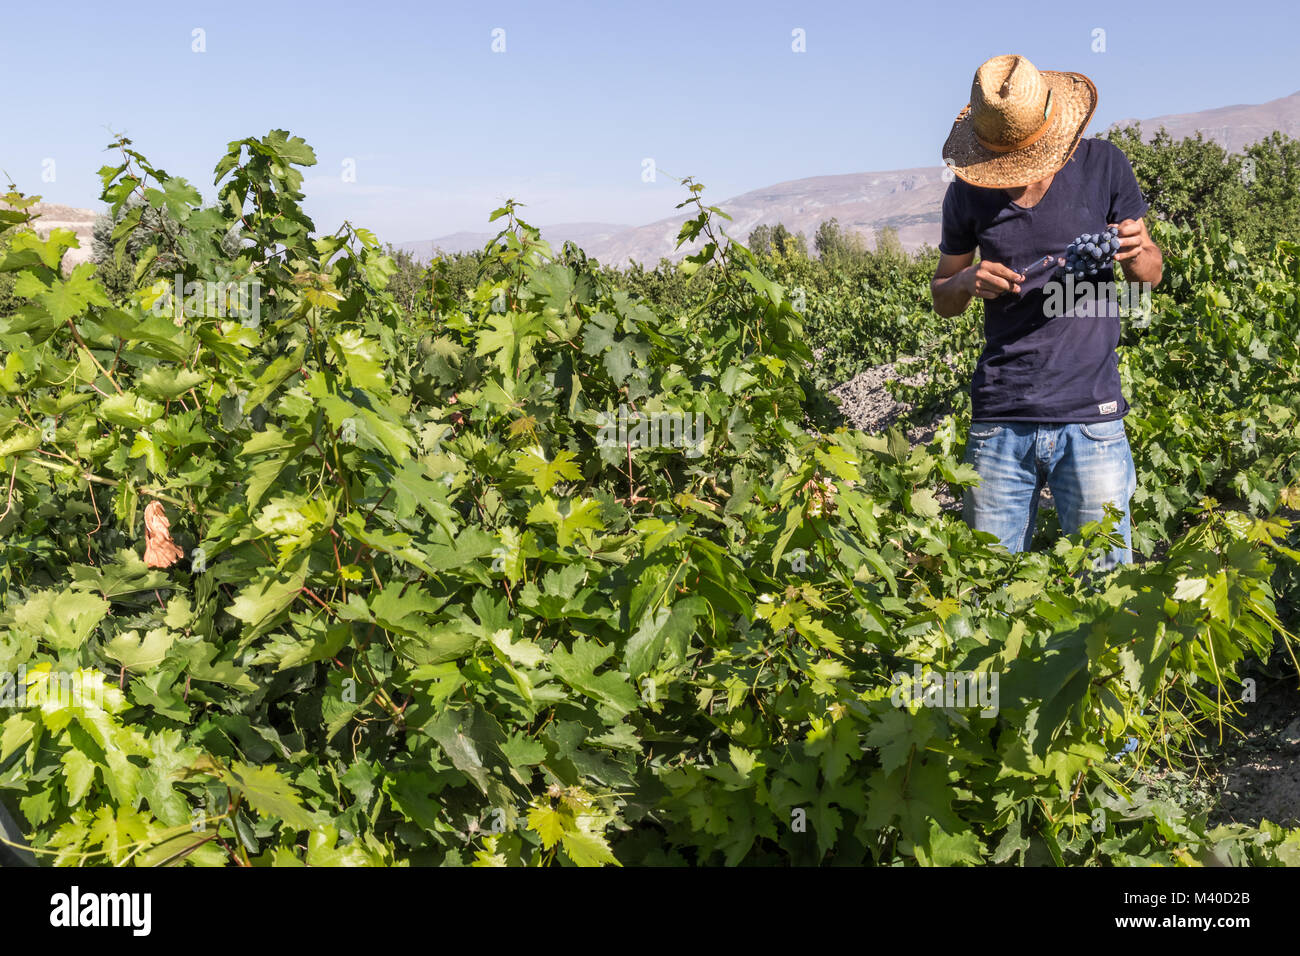 Unidentified man cuts bunch of grapes in vineyard.Uzumlu,Erzincan,Turkey.07 September 2014 - Stock Image